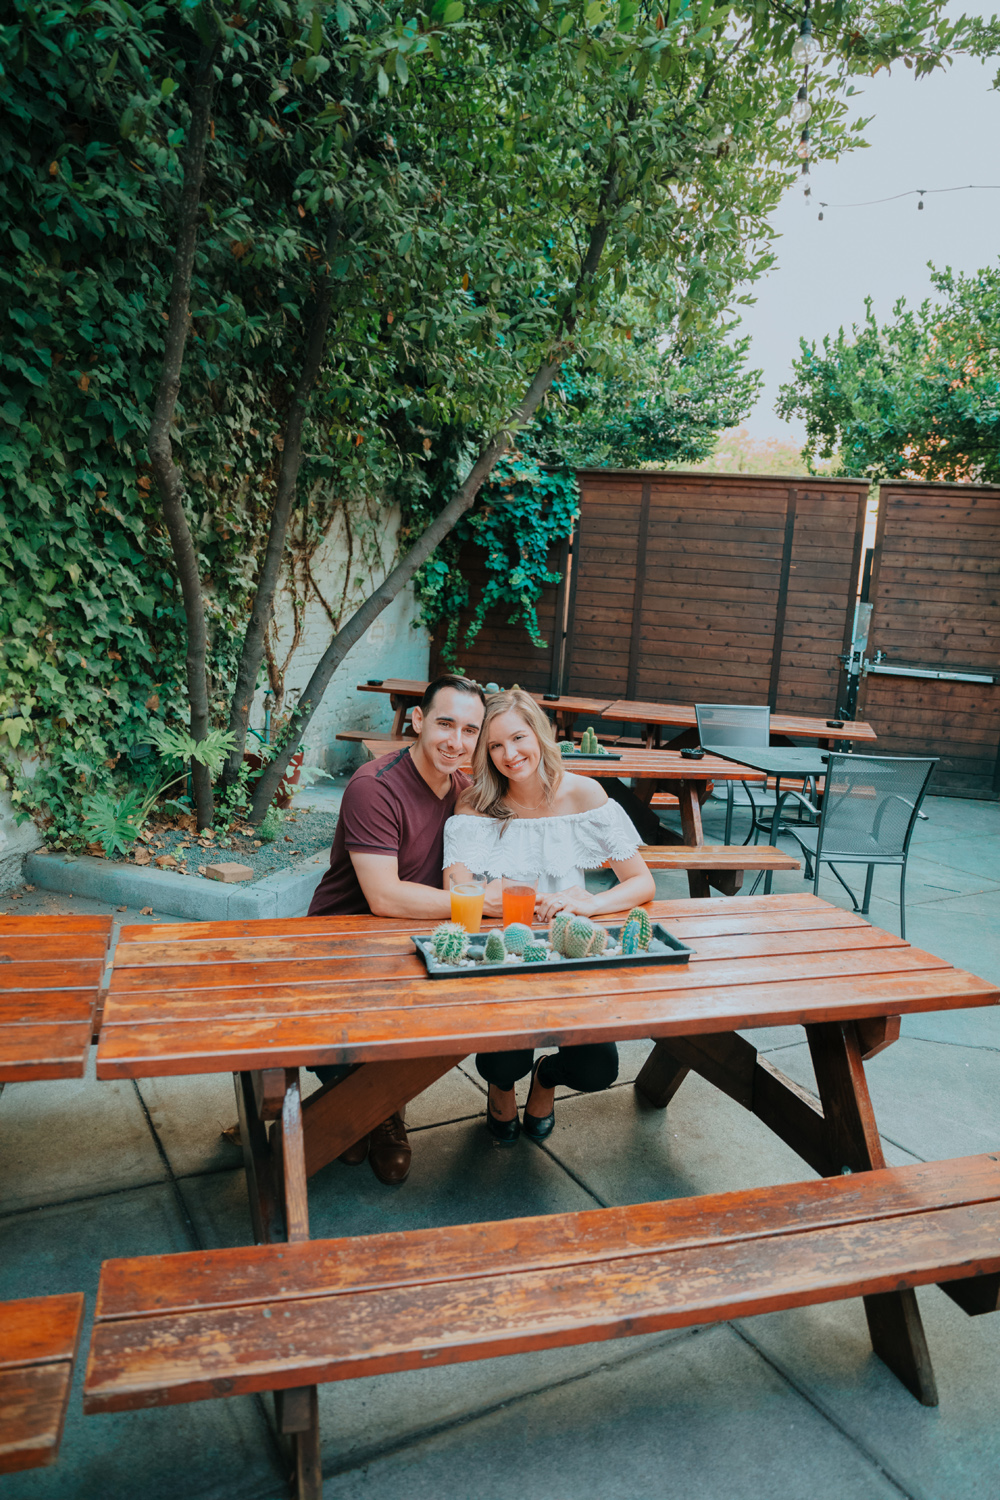 Chico-CA-engagement-photography-Madison-Bear-Garden-Chico-Downtown-Argus-Bar-62.jpg